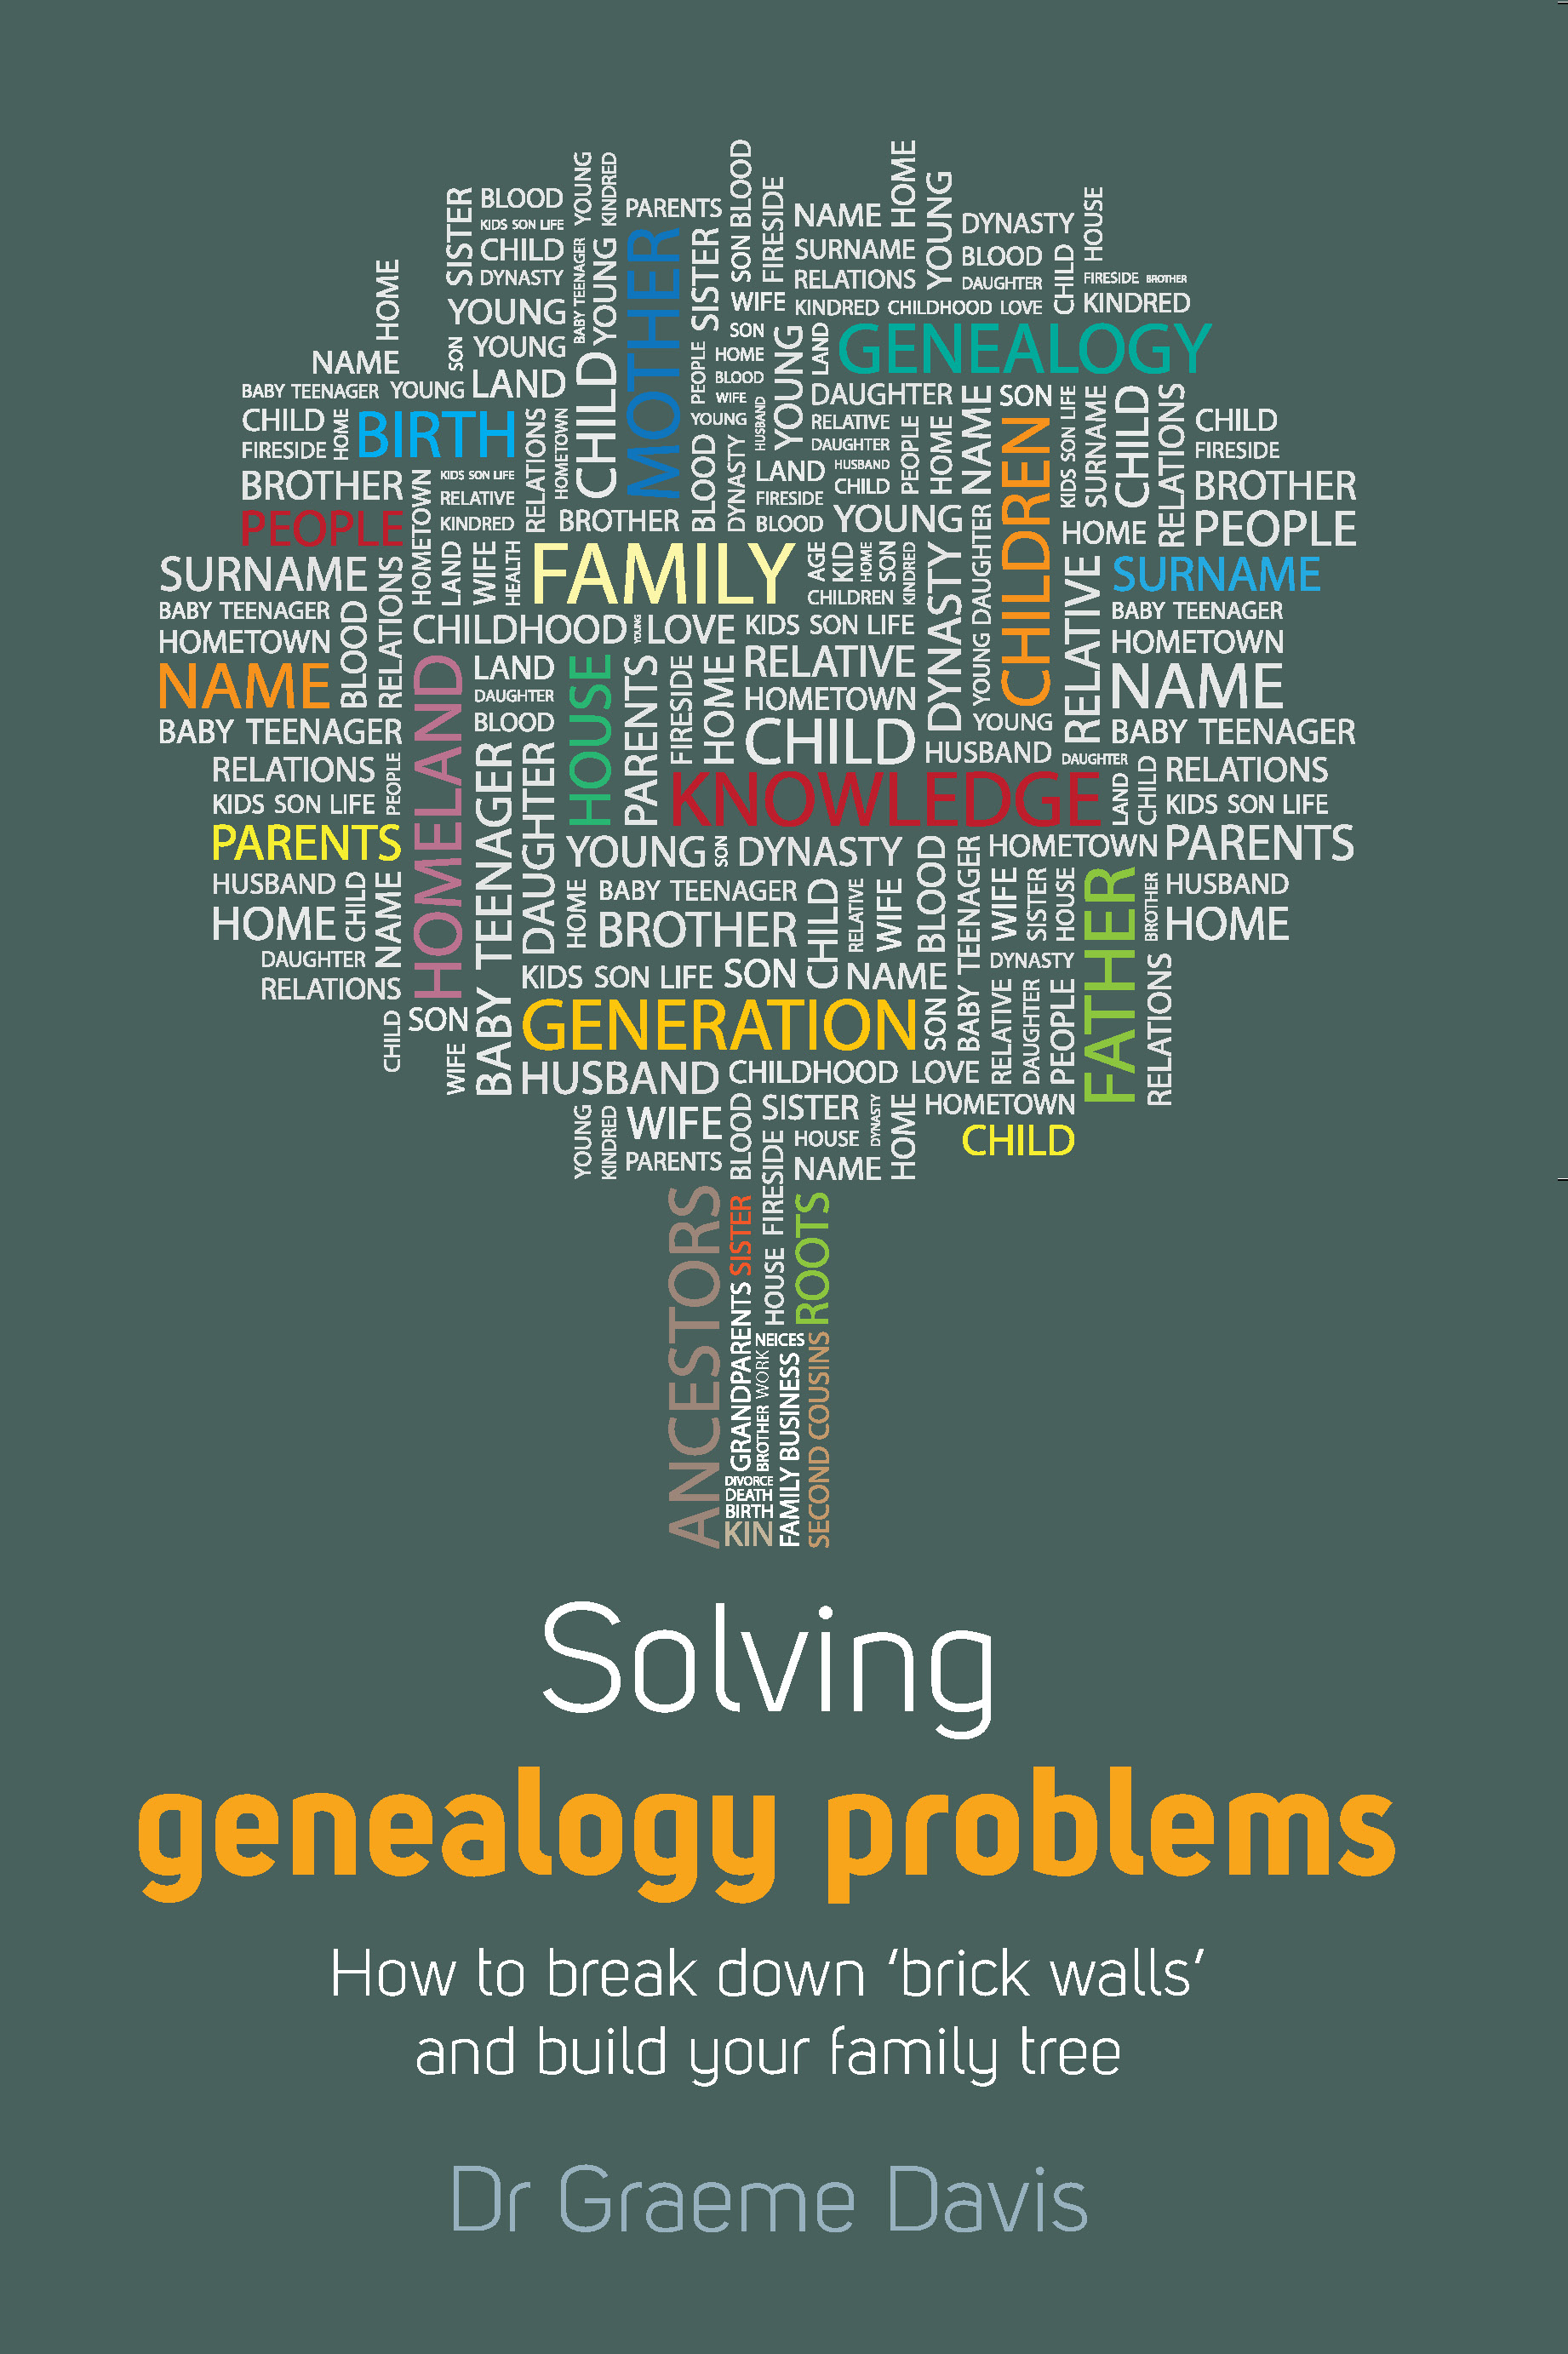 Solving Genealogy Problems By: Dr Graeme Davis,Graeme Davis